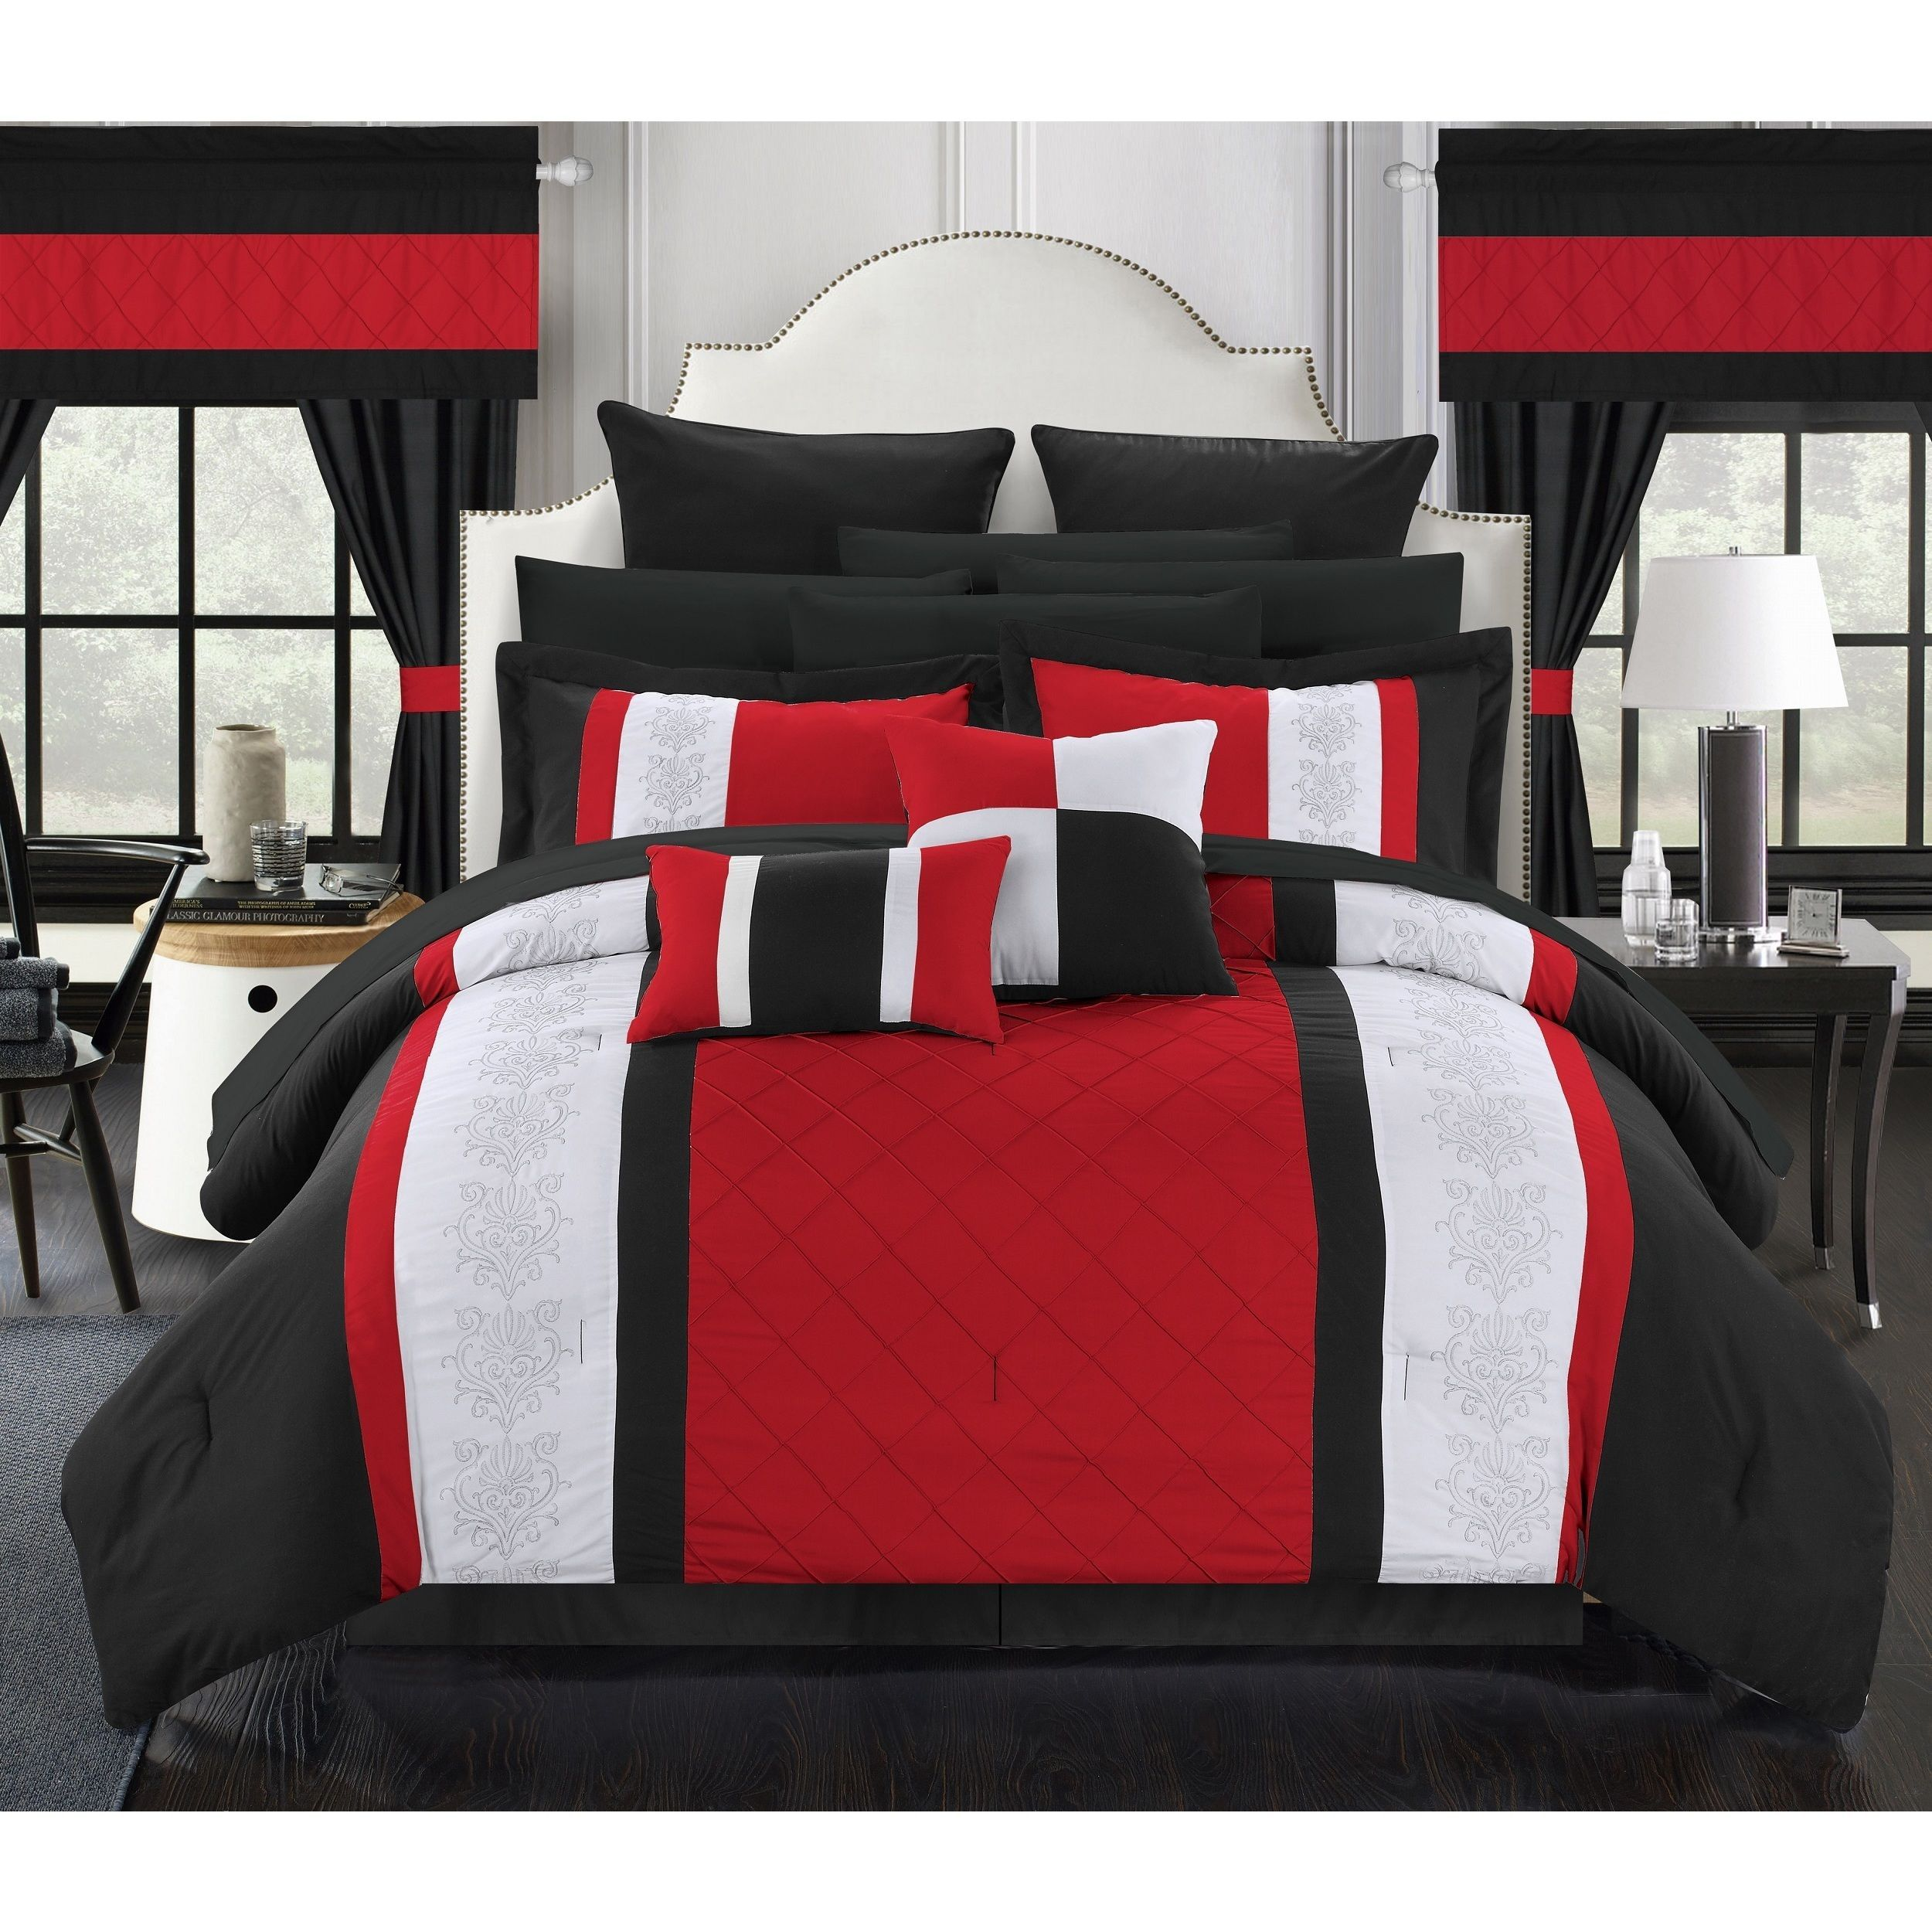 Black Colour Bedroom Off White Bedroom Curtains Bedroom Chandeliers Pottery Barn Small Bedroom Lighting Ideas: Black, Red And White Color Blocks Top This Stunning